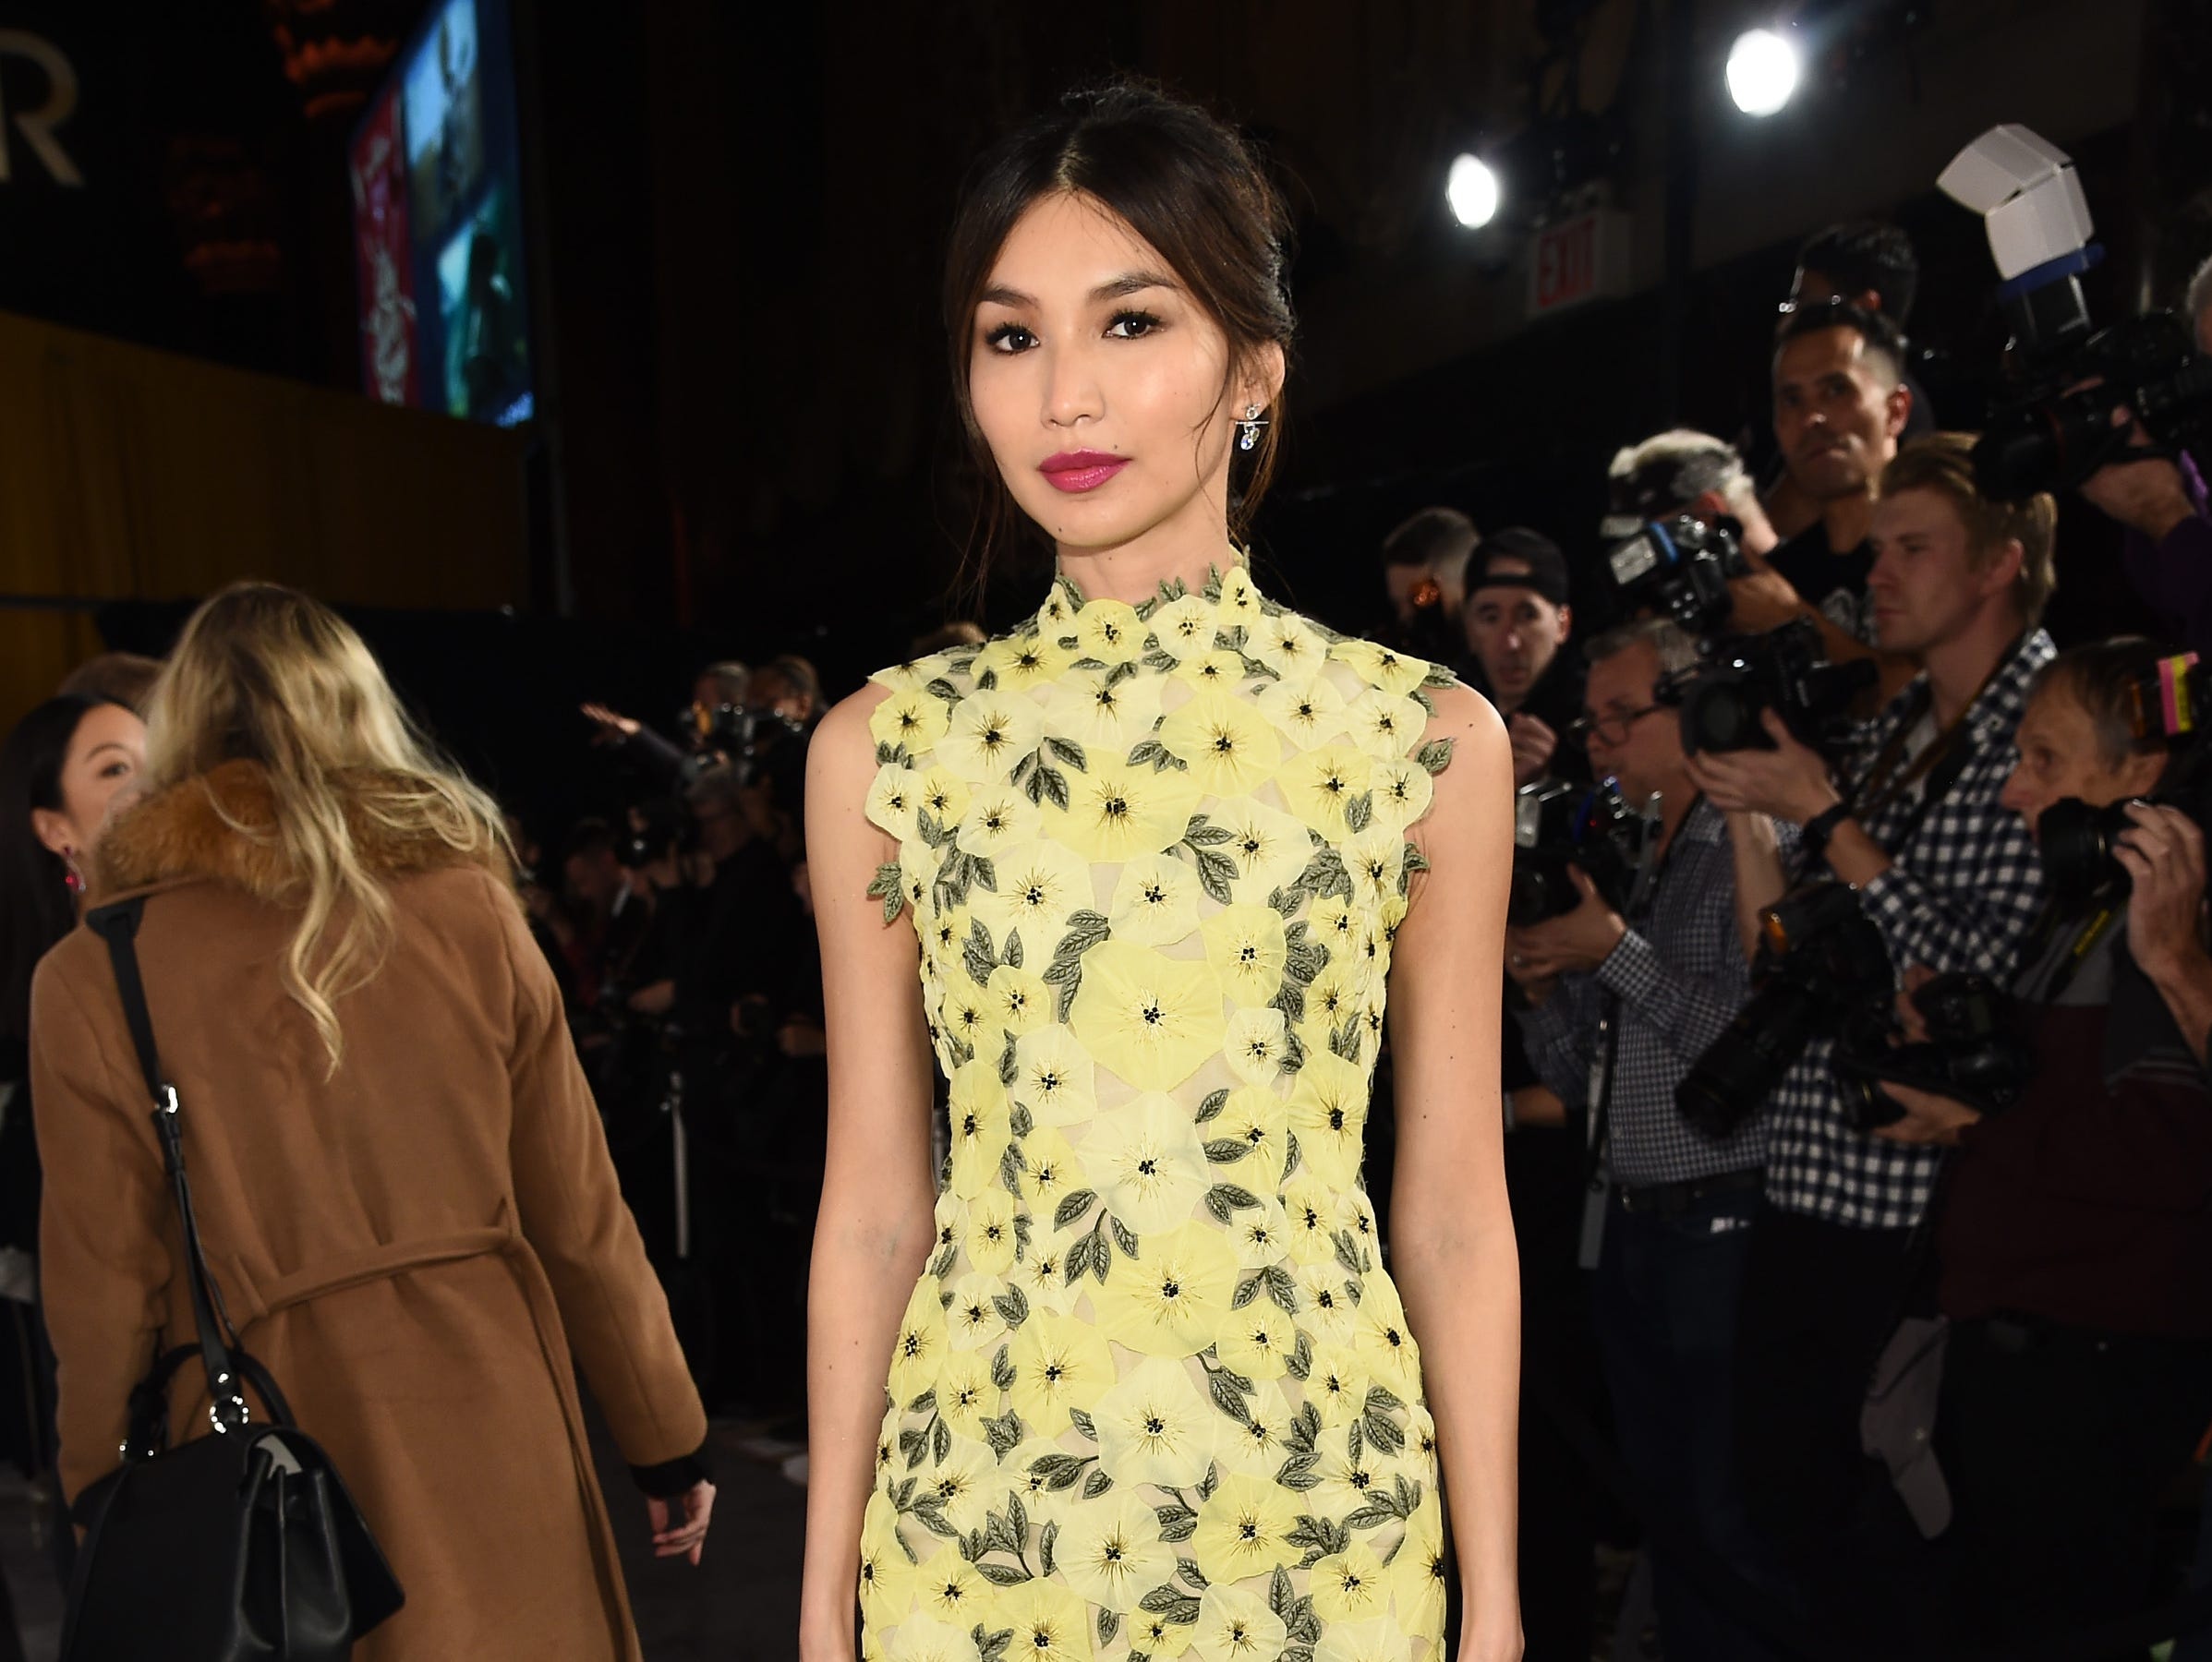 NEW YORK, NY - JANUARY 08:  Gemma Chan attends The National Board of Review Annual Awards Gala at Cipriani 42nd Street on January 8, 2019 in New York City.  (Photo by Dimitrios Kambouris/Getty Images for National Board of Review) ORG XMIT: 775259363 ORIG FILE ID: 1079454414